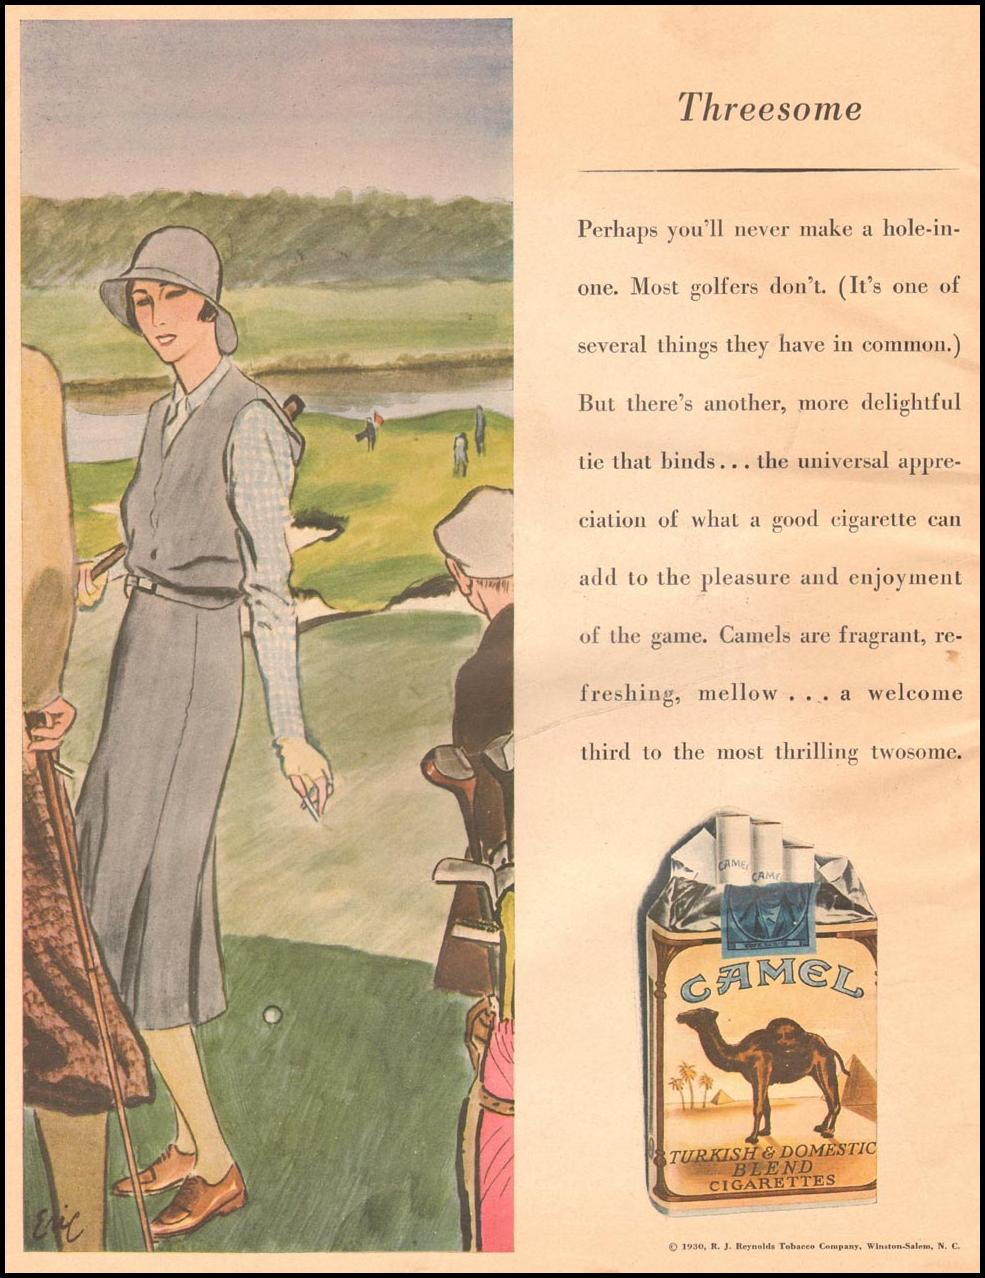 CAMEL CIGARETTES THE HOME MAGAZINE 07/01/1930 BACK COVER